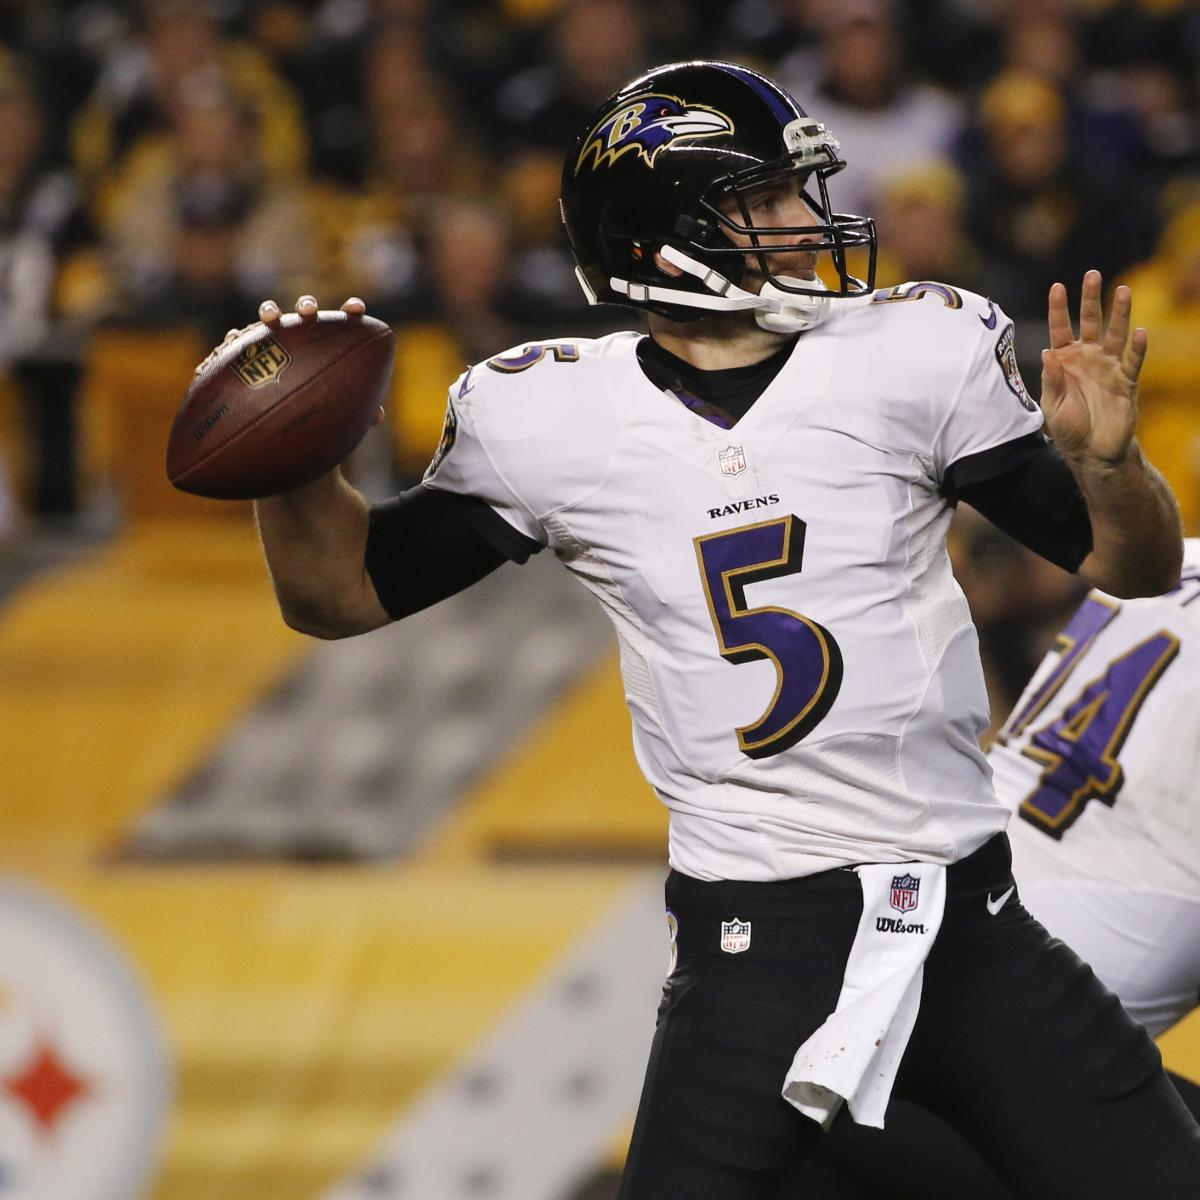 Patriots ravens line betting explained ufc betting app for iphone